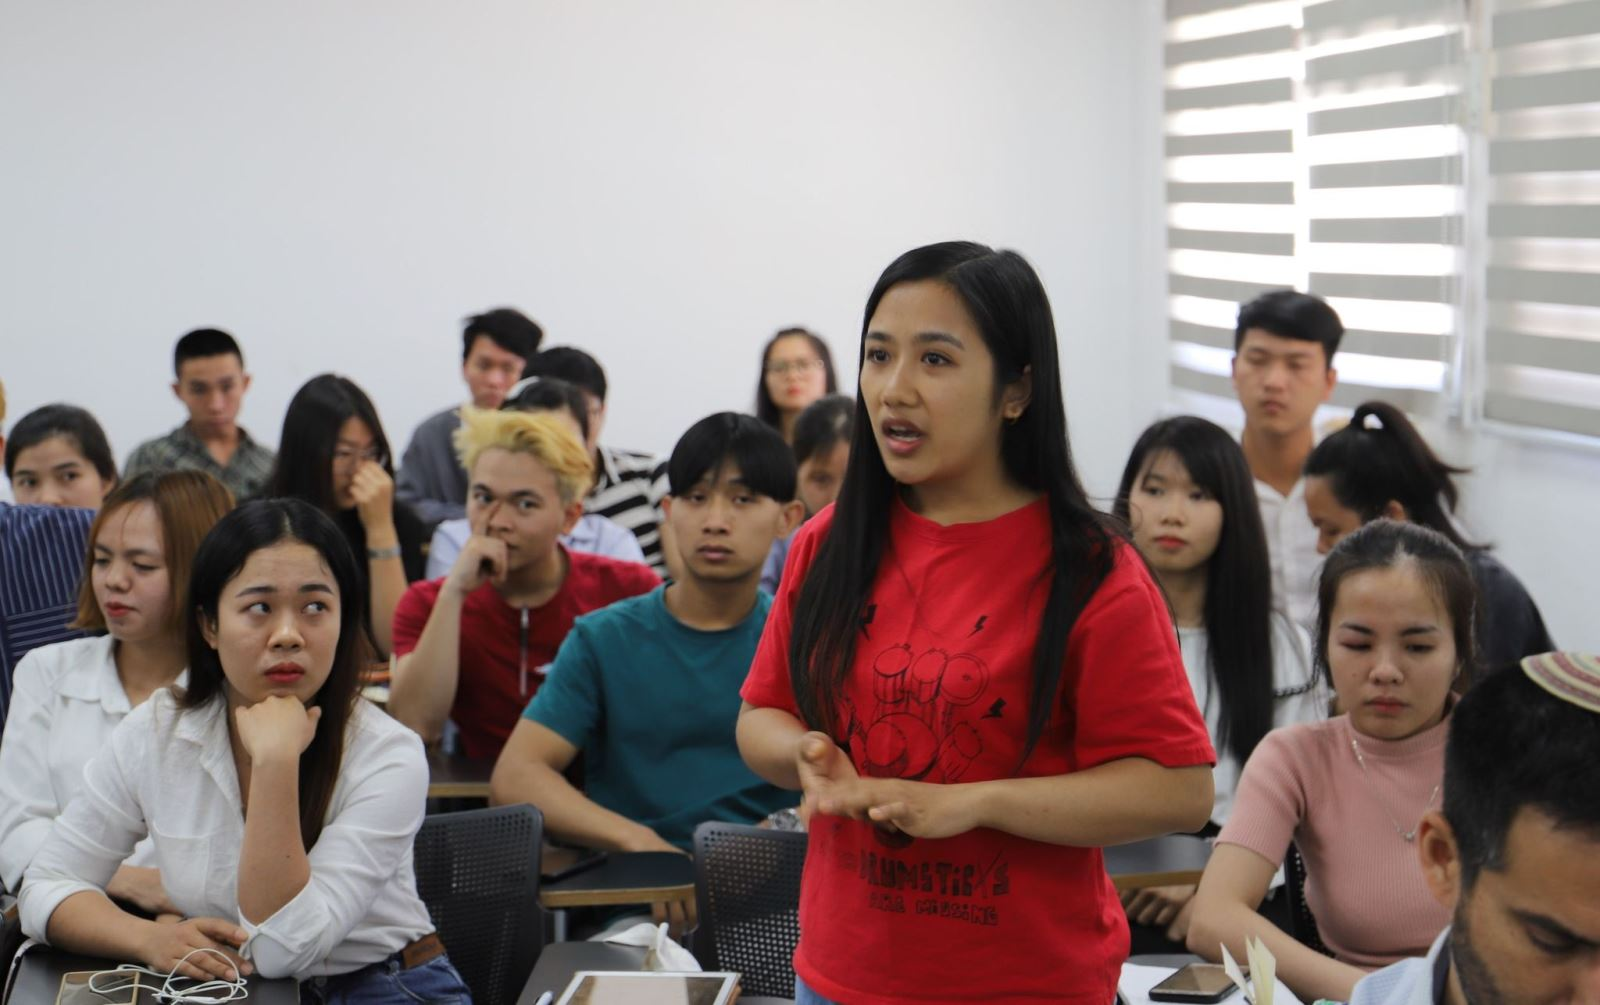 Vietnamese Embassy in Israel visits, encourages trainees post-conflict